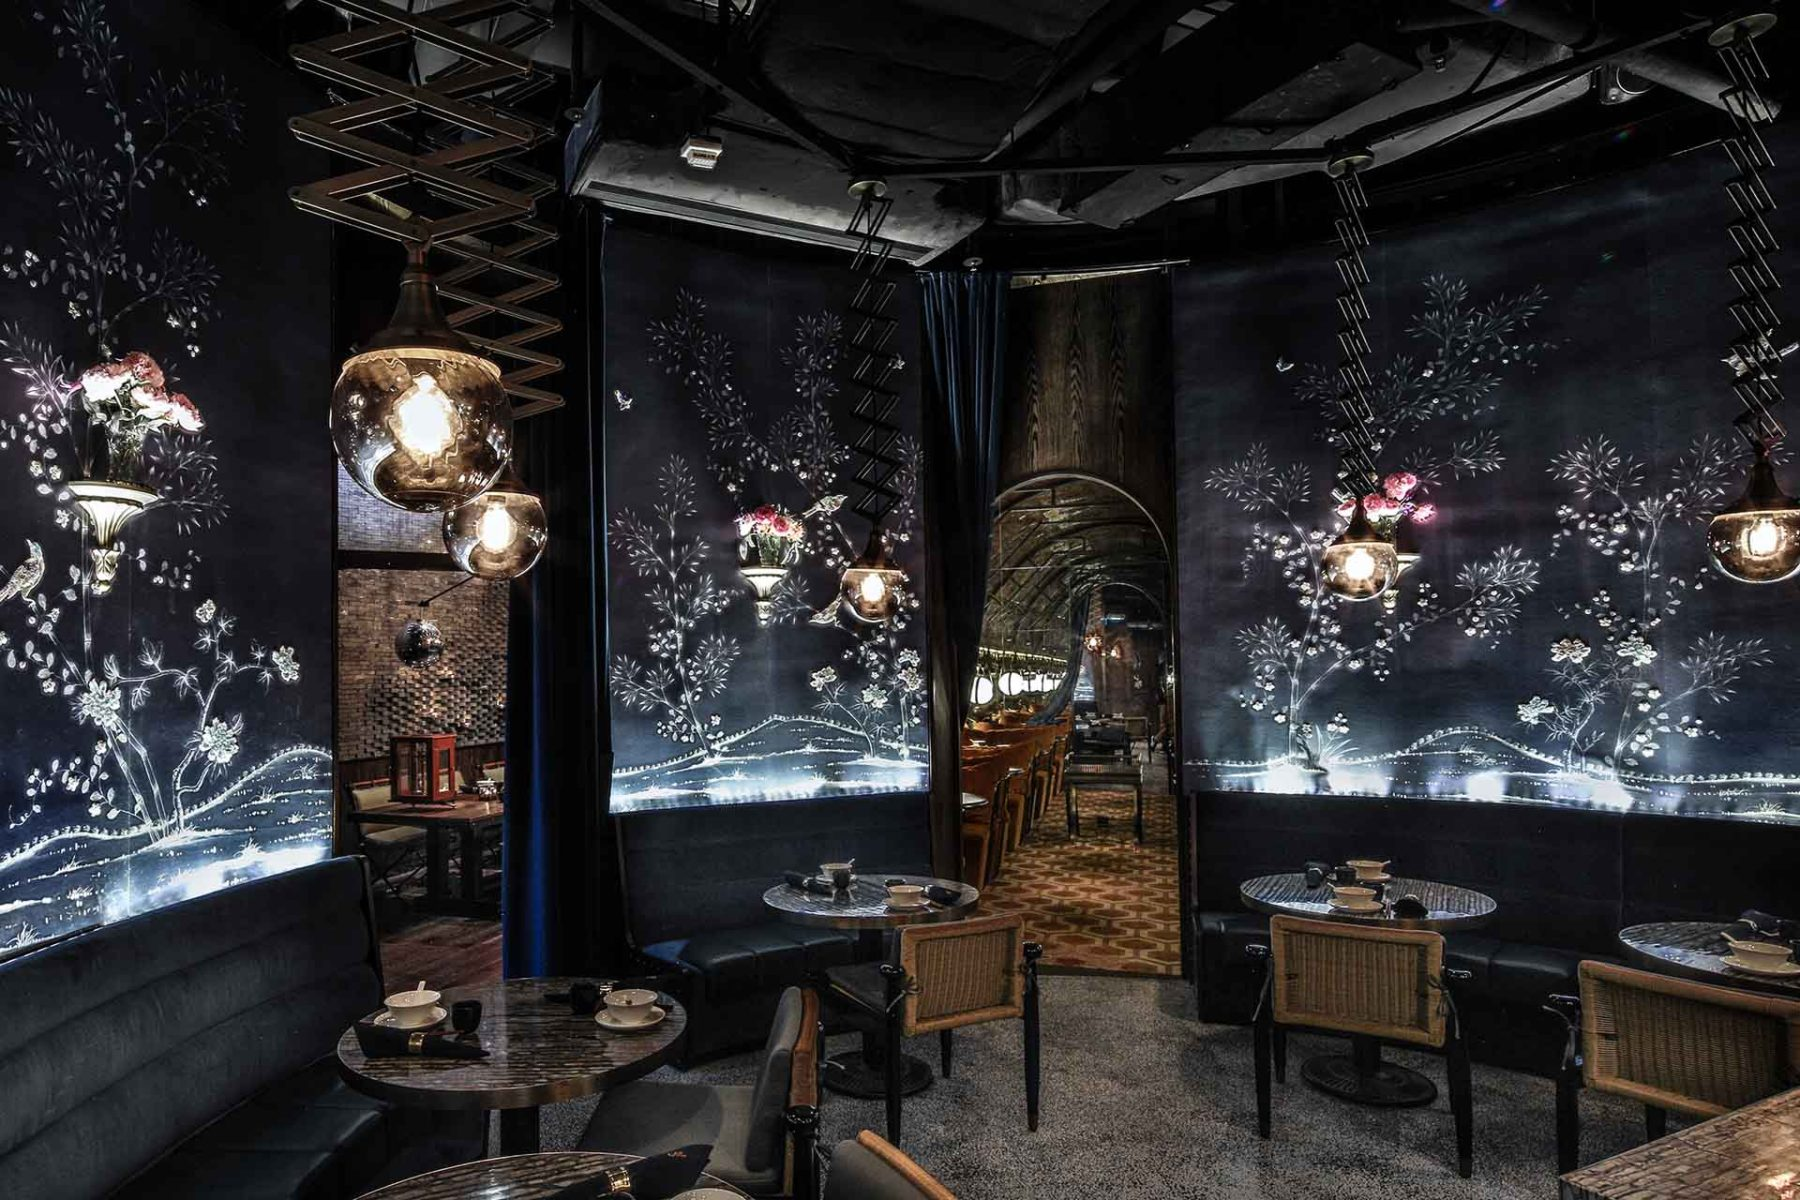 Wang Mott 32 Hong Kong